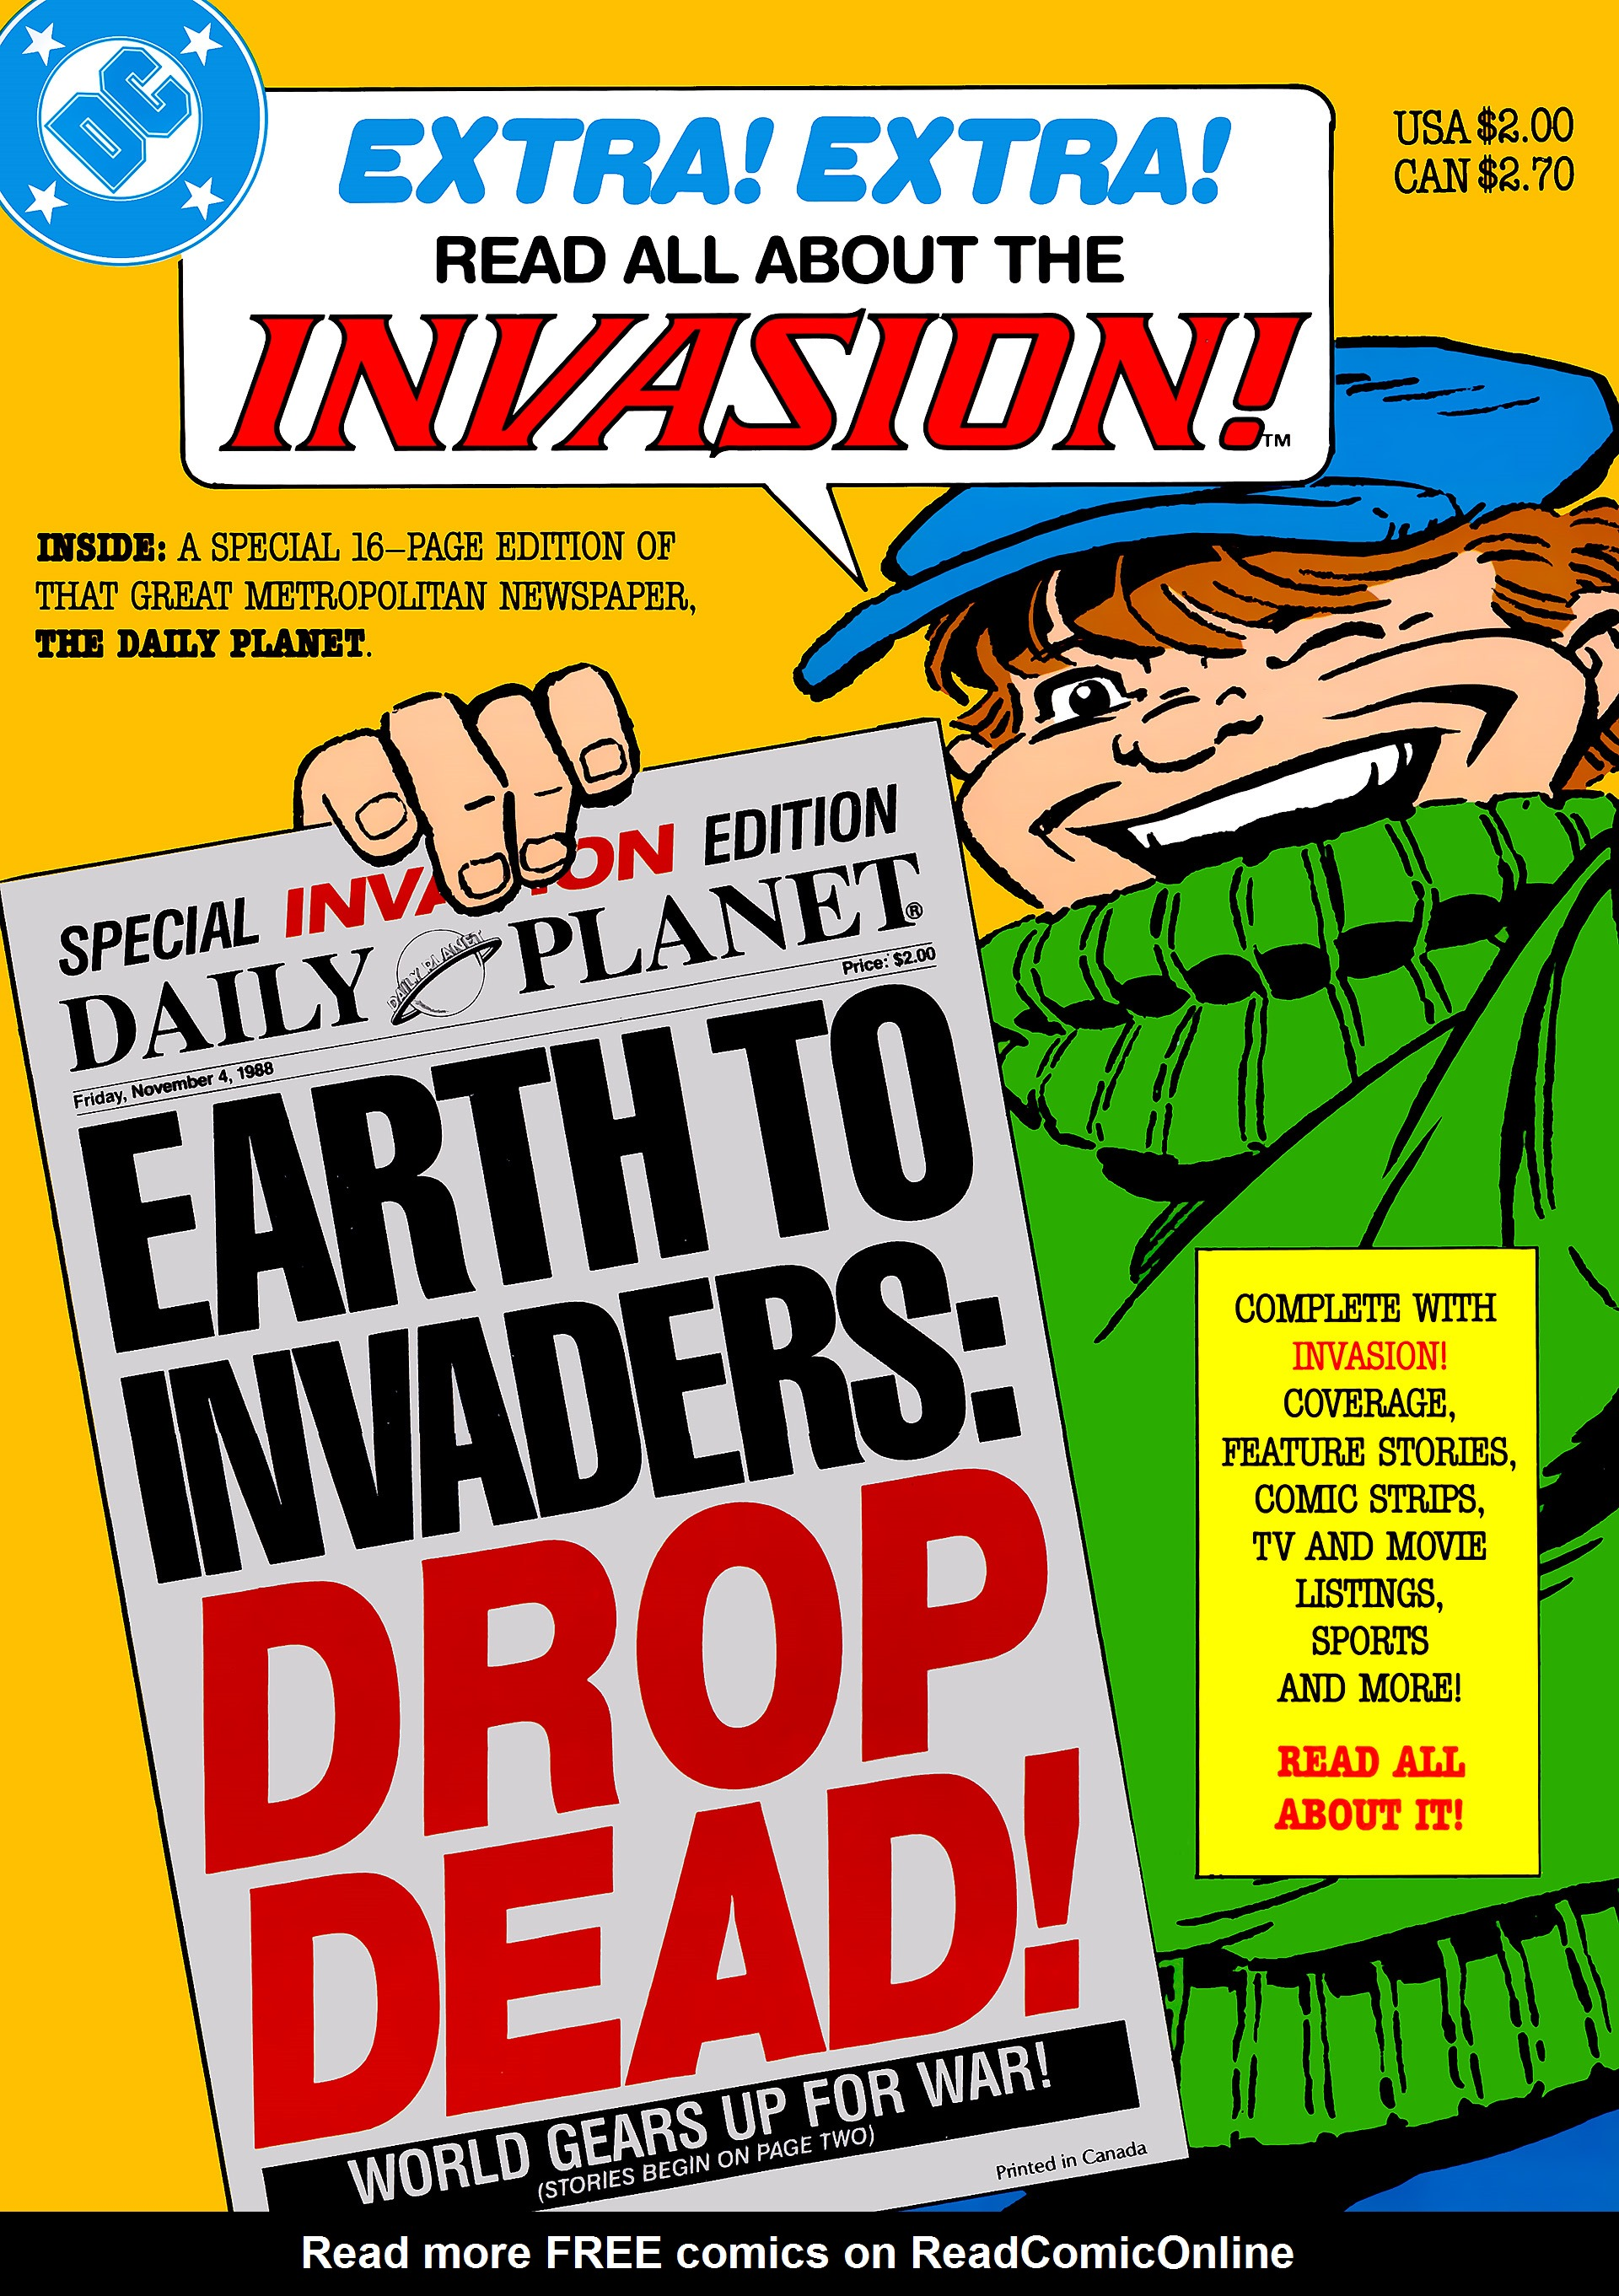 Invasion! Special: Daily Planet Full Page 1